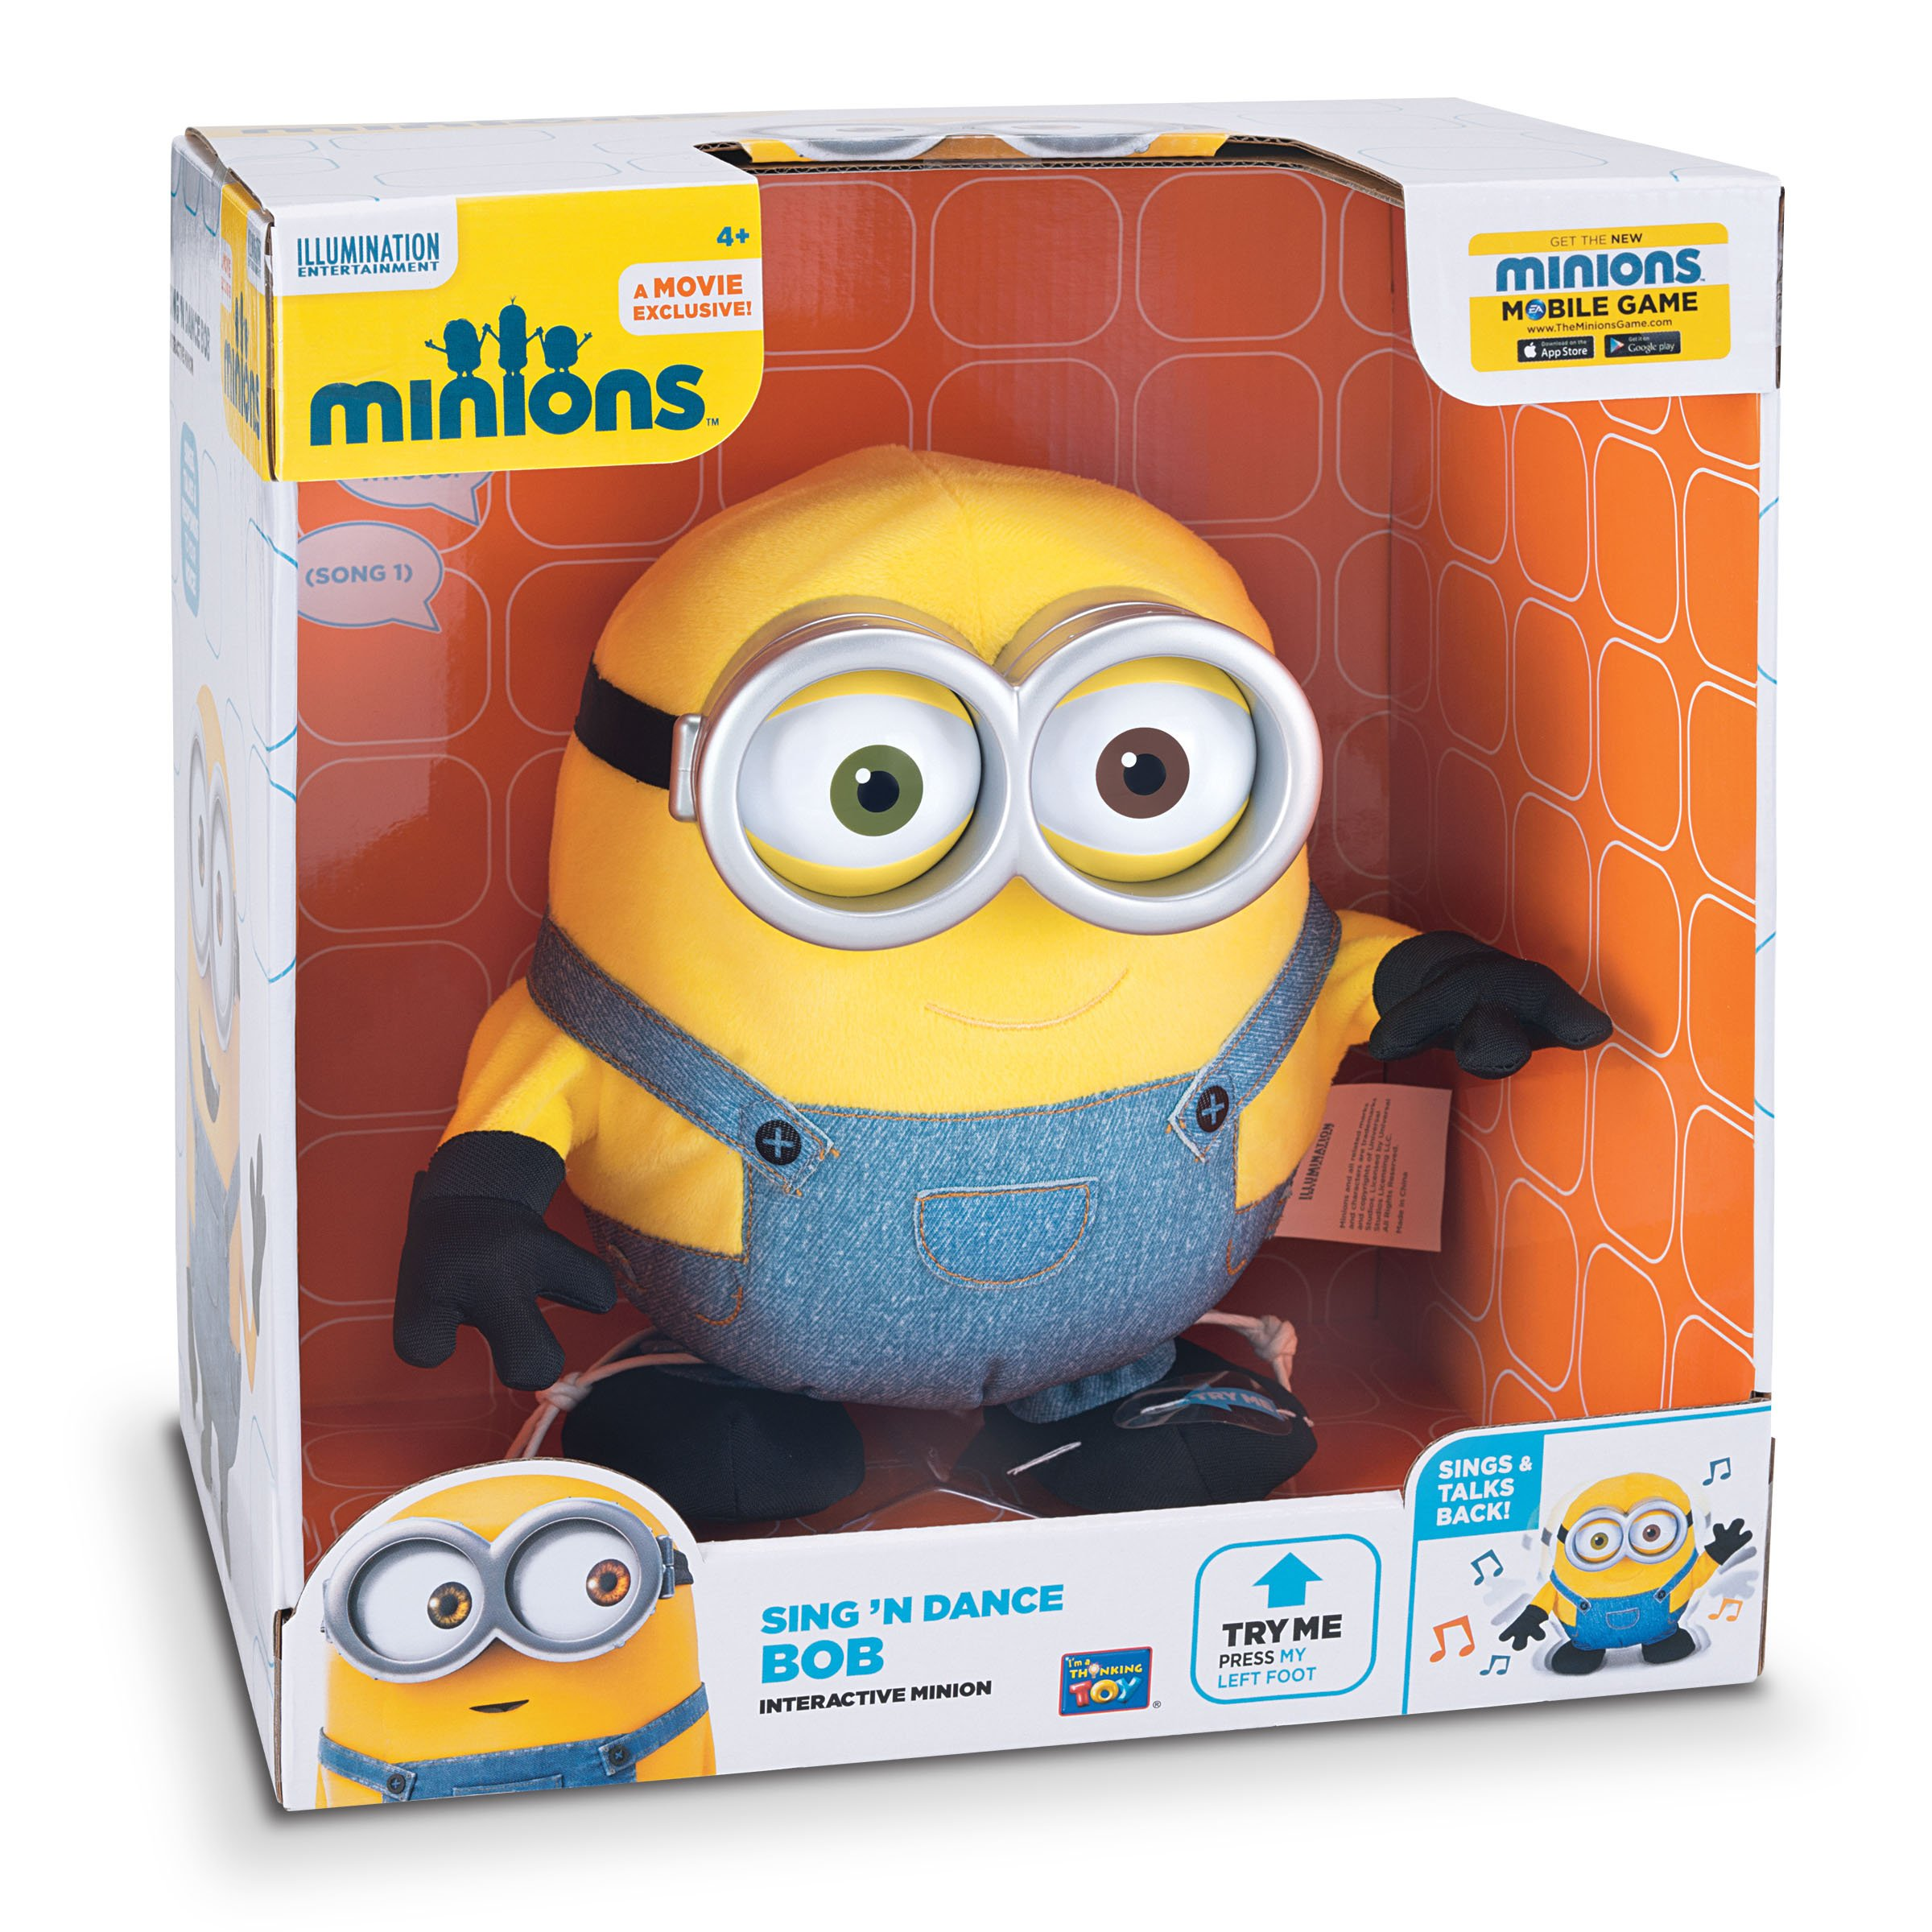 Minions Sing' N Dance Bob by Despicable Me